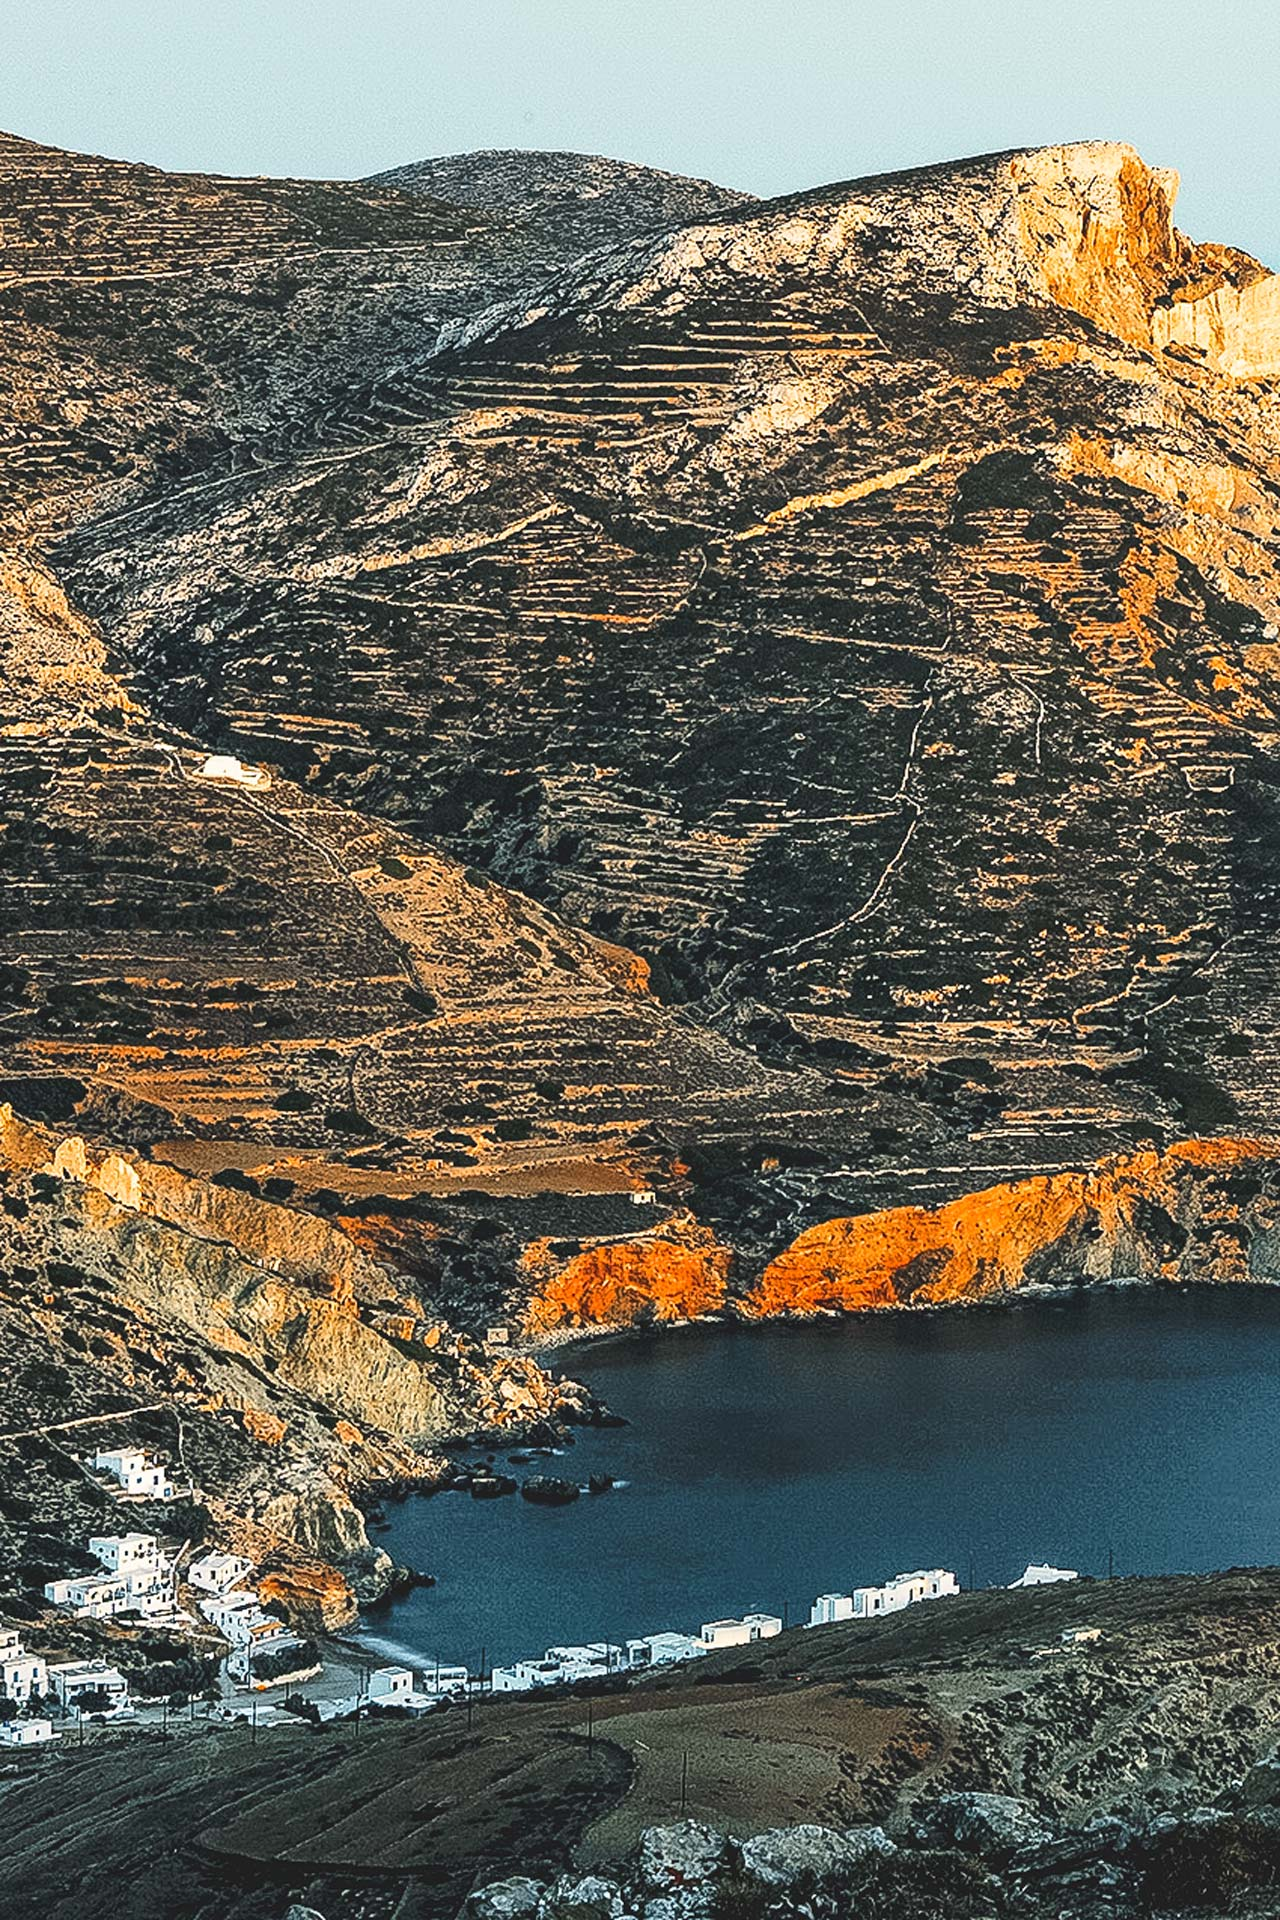 One of the footpaths will lead you to the picturesque bay of Aggali, along a coastal route in a rocky and steep landscape-Folegandros